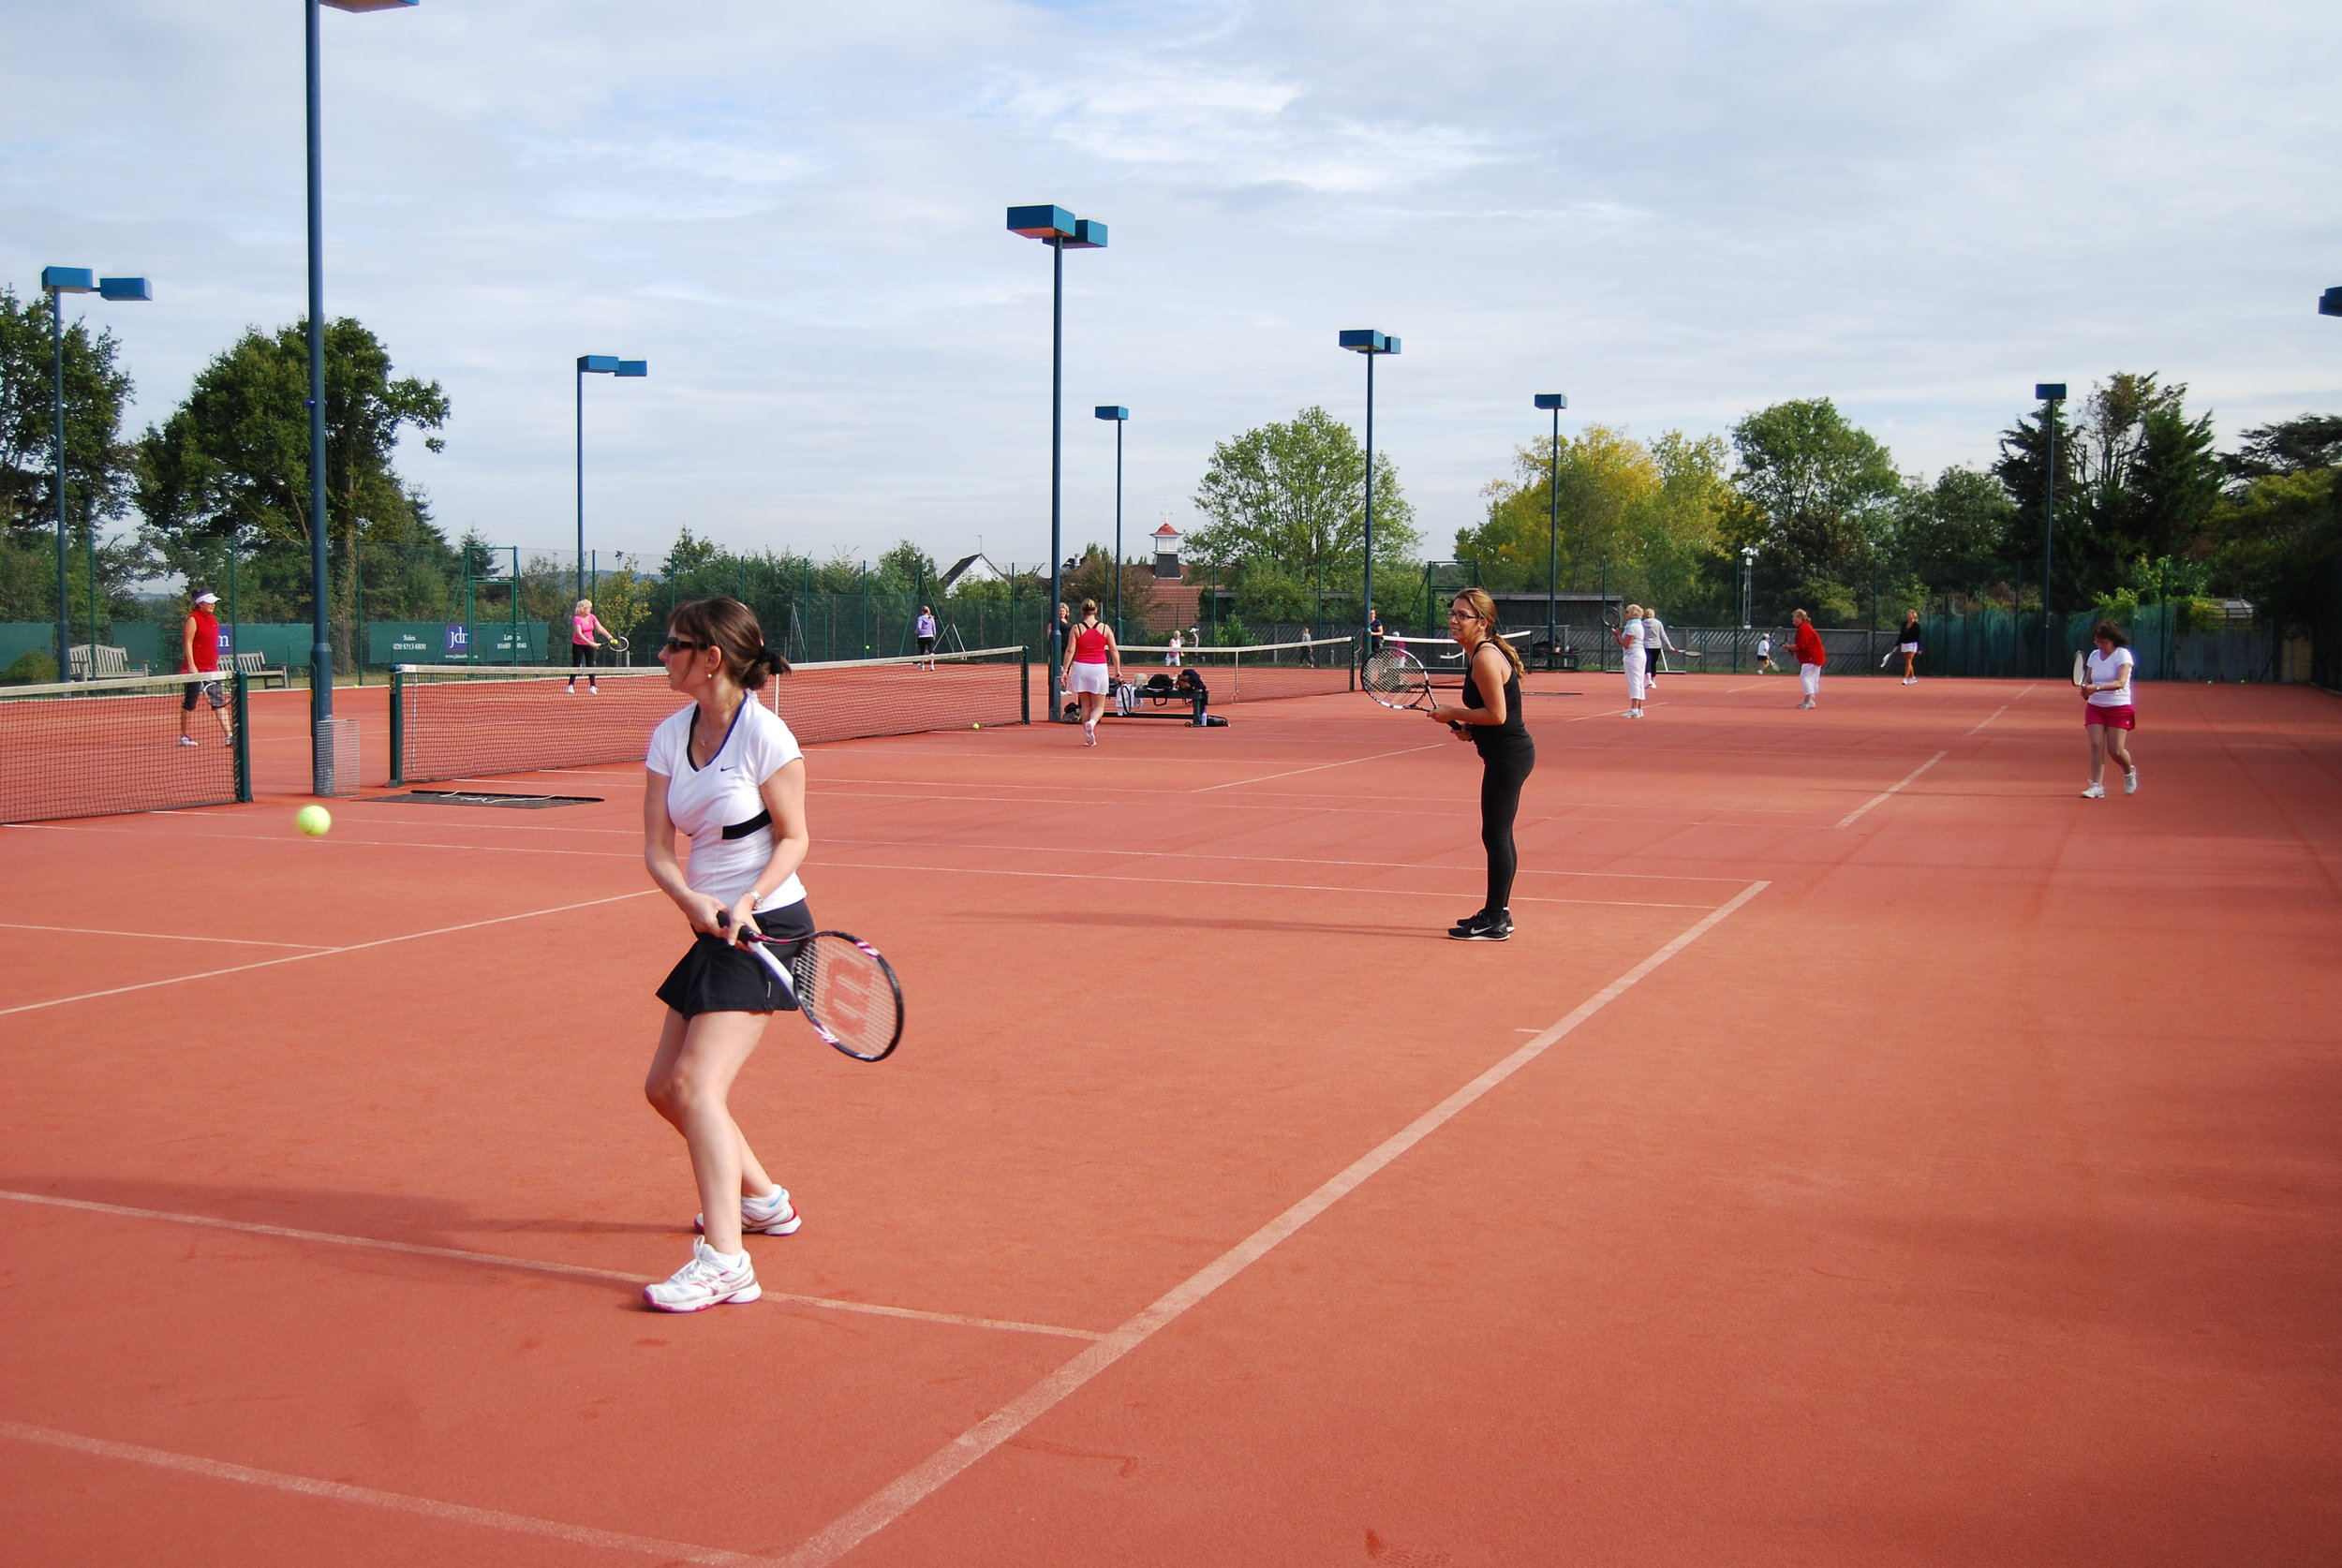 We had 20 participants for the midweek tournament last Thursday. David Mccart and Sam McCarthy were the winners, with Becky MacCallum & Hannah Maynard finishing a close 2nd. There was some great tennis played throughout the morning and a lovely lunch followed. Many thanks to Sandra Whichello for running the tournament. The club made a profit of £123, so a big win win!!